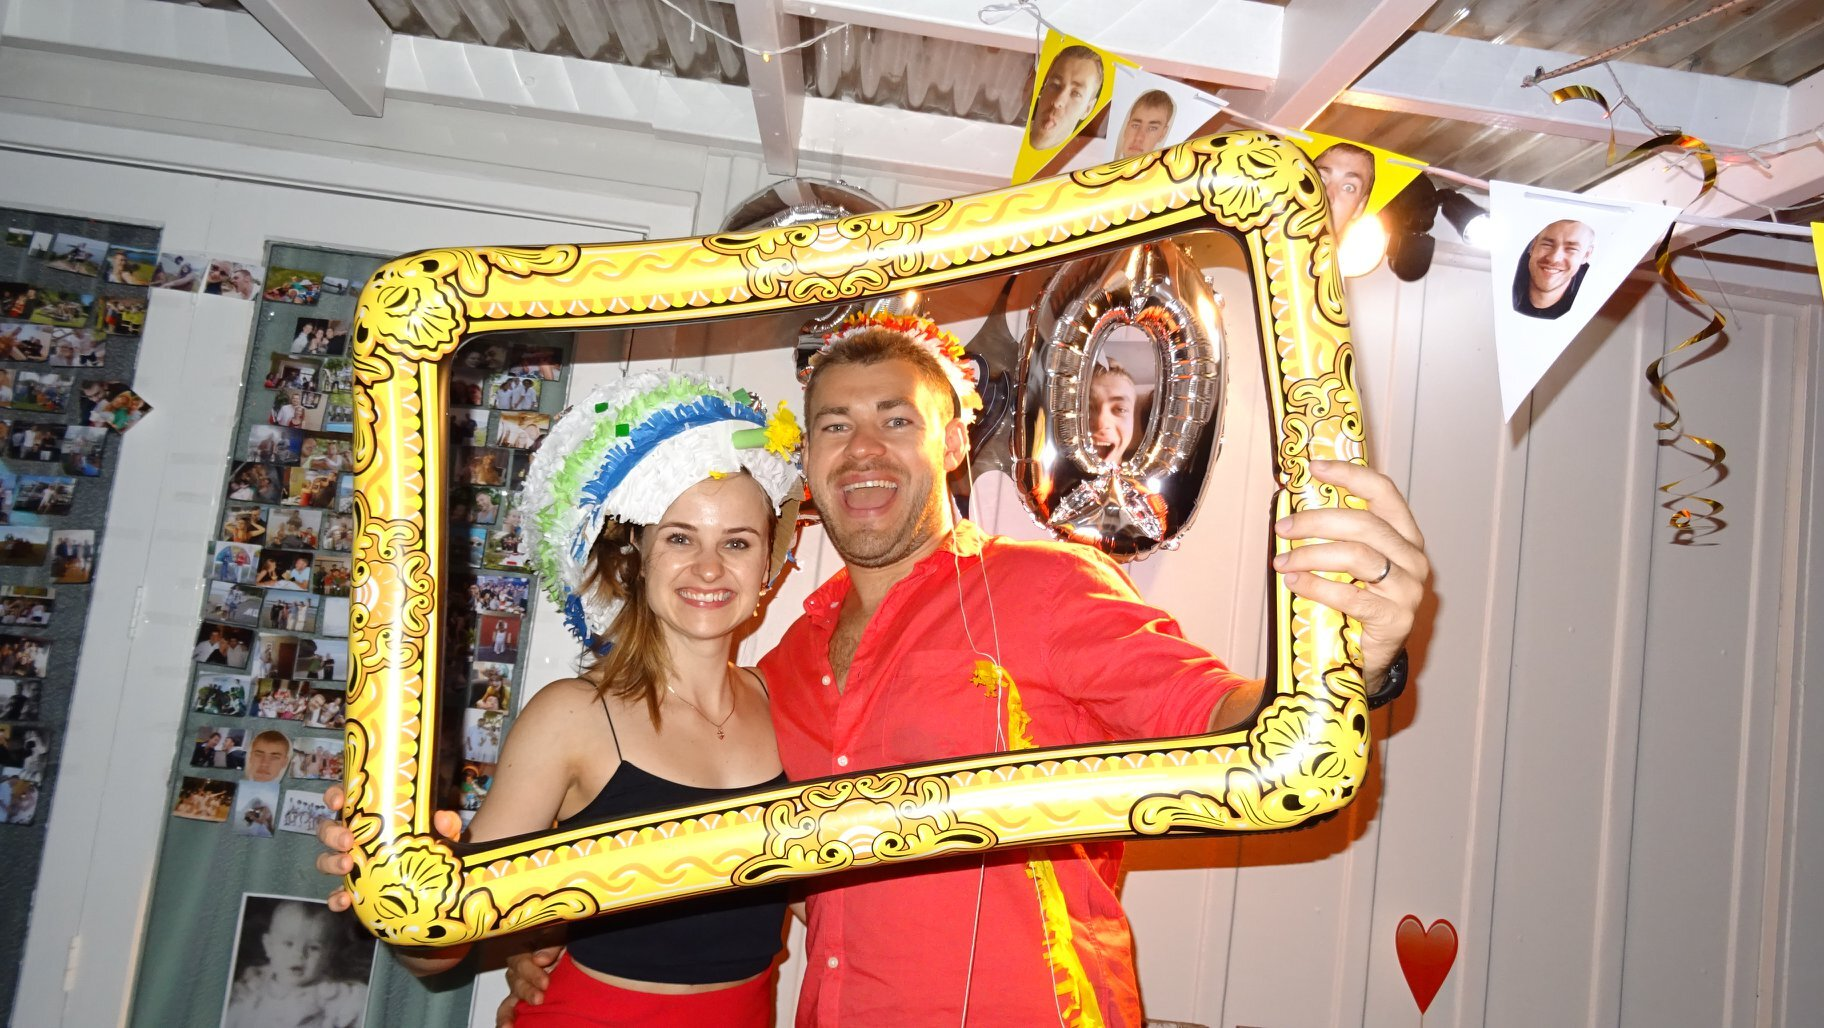 Maria and her husband Igor at his 30th birthday party